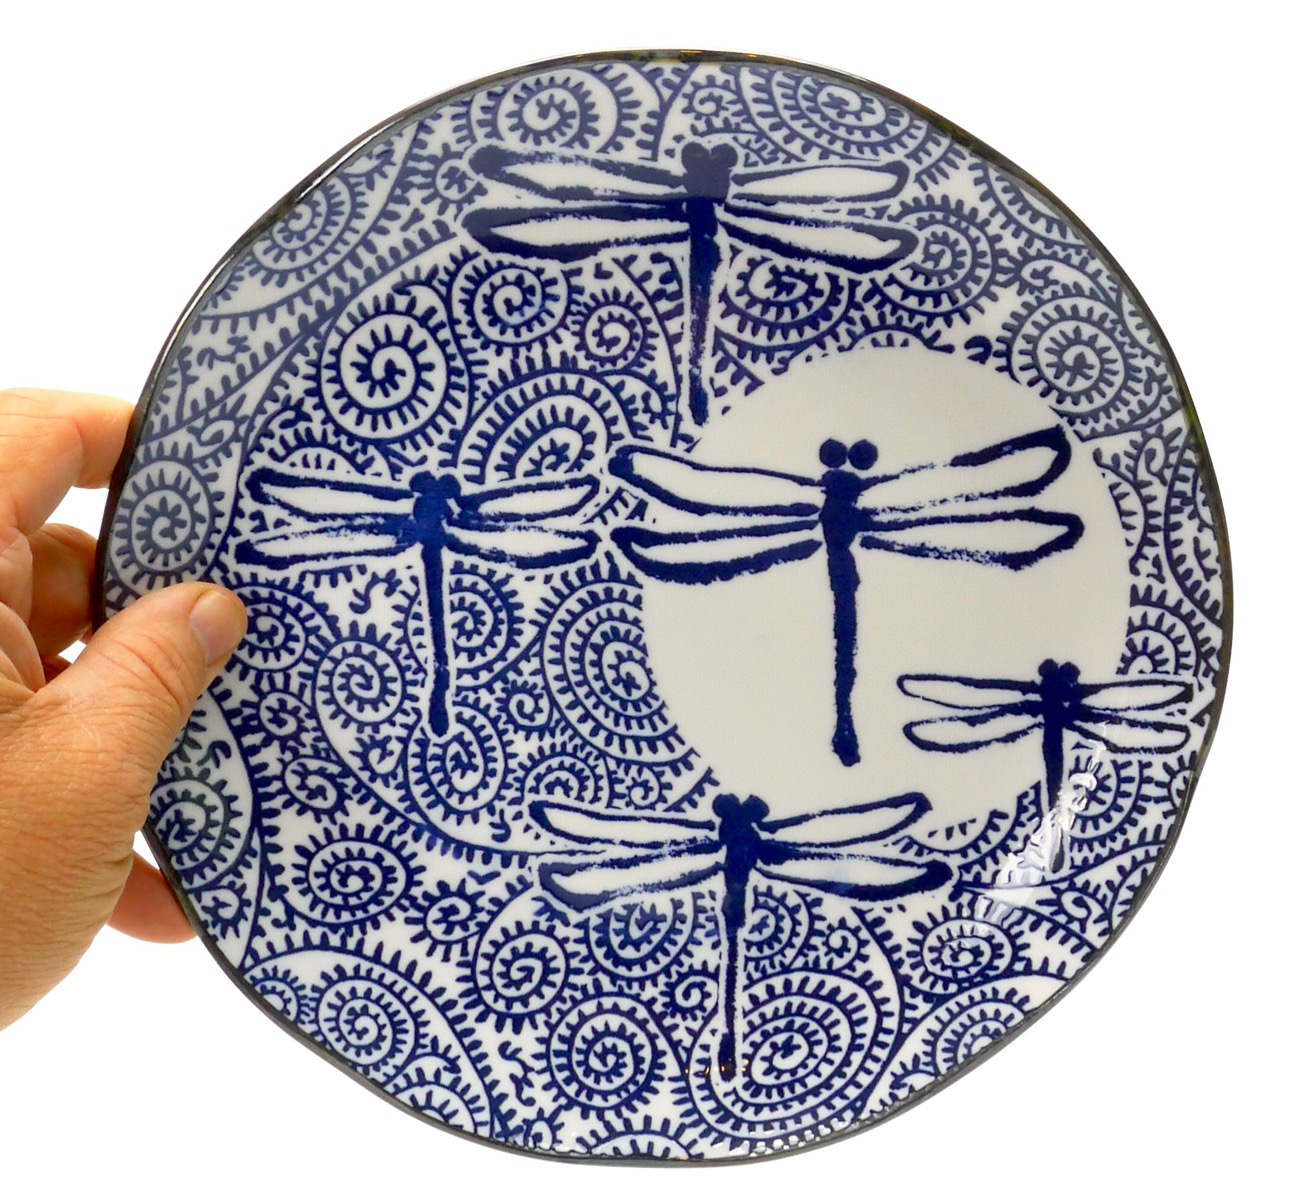 Image of Japanese Dragonfly Plate - 10 inch size